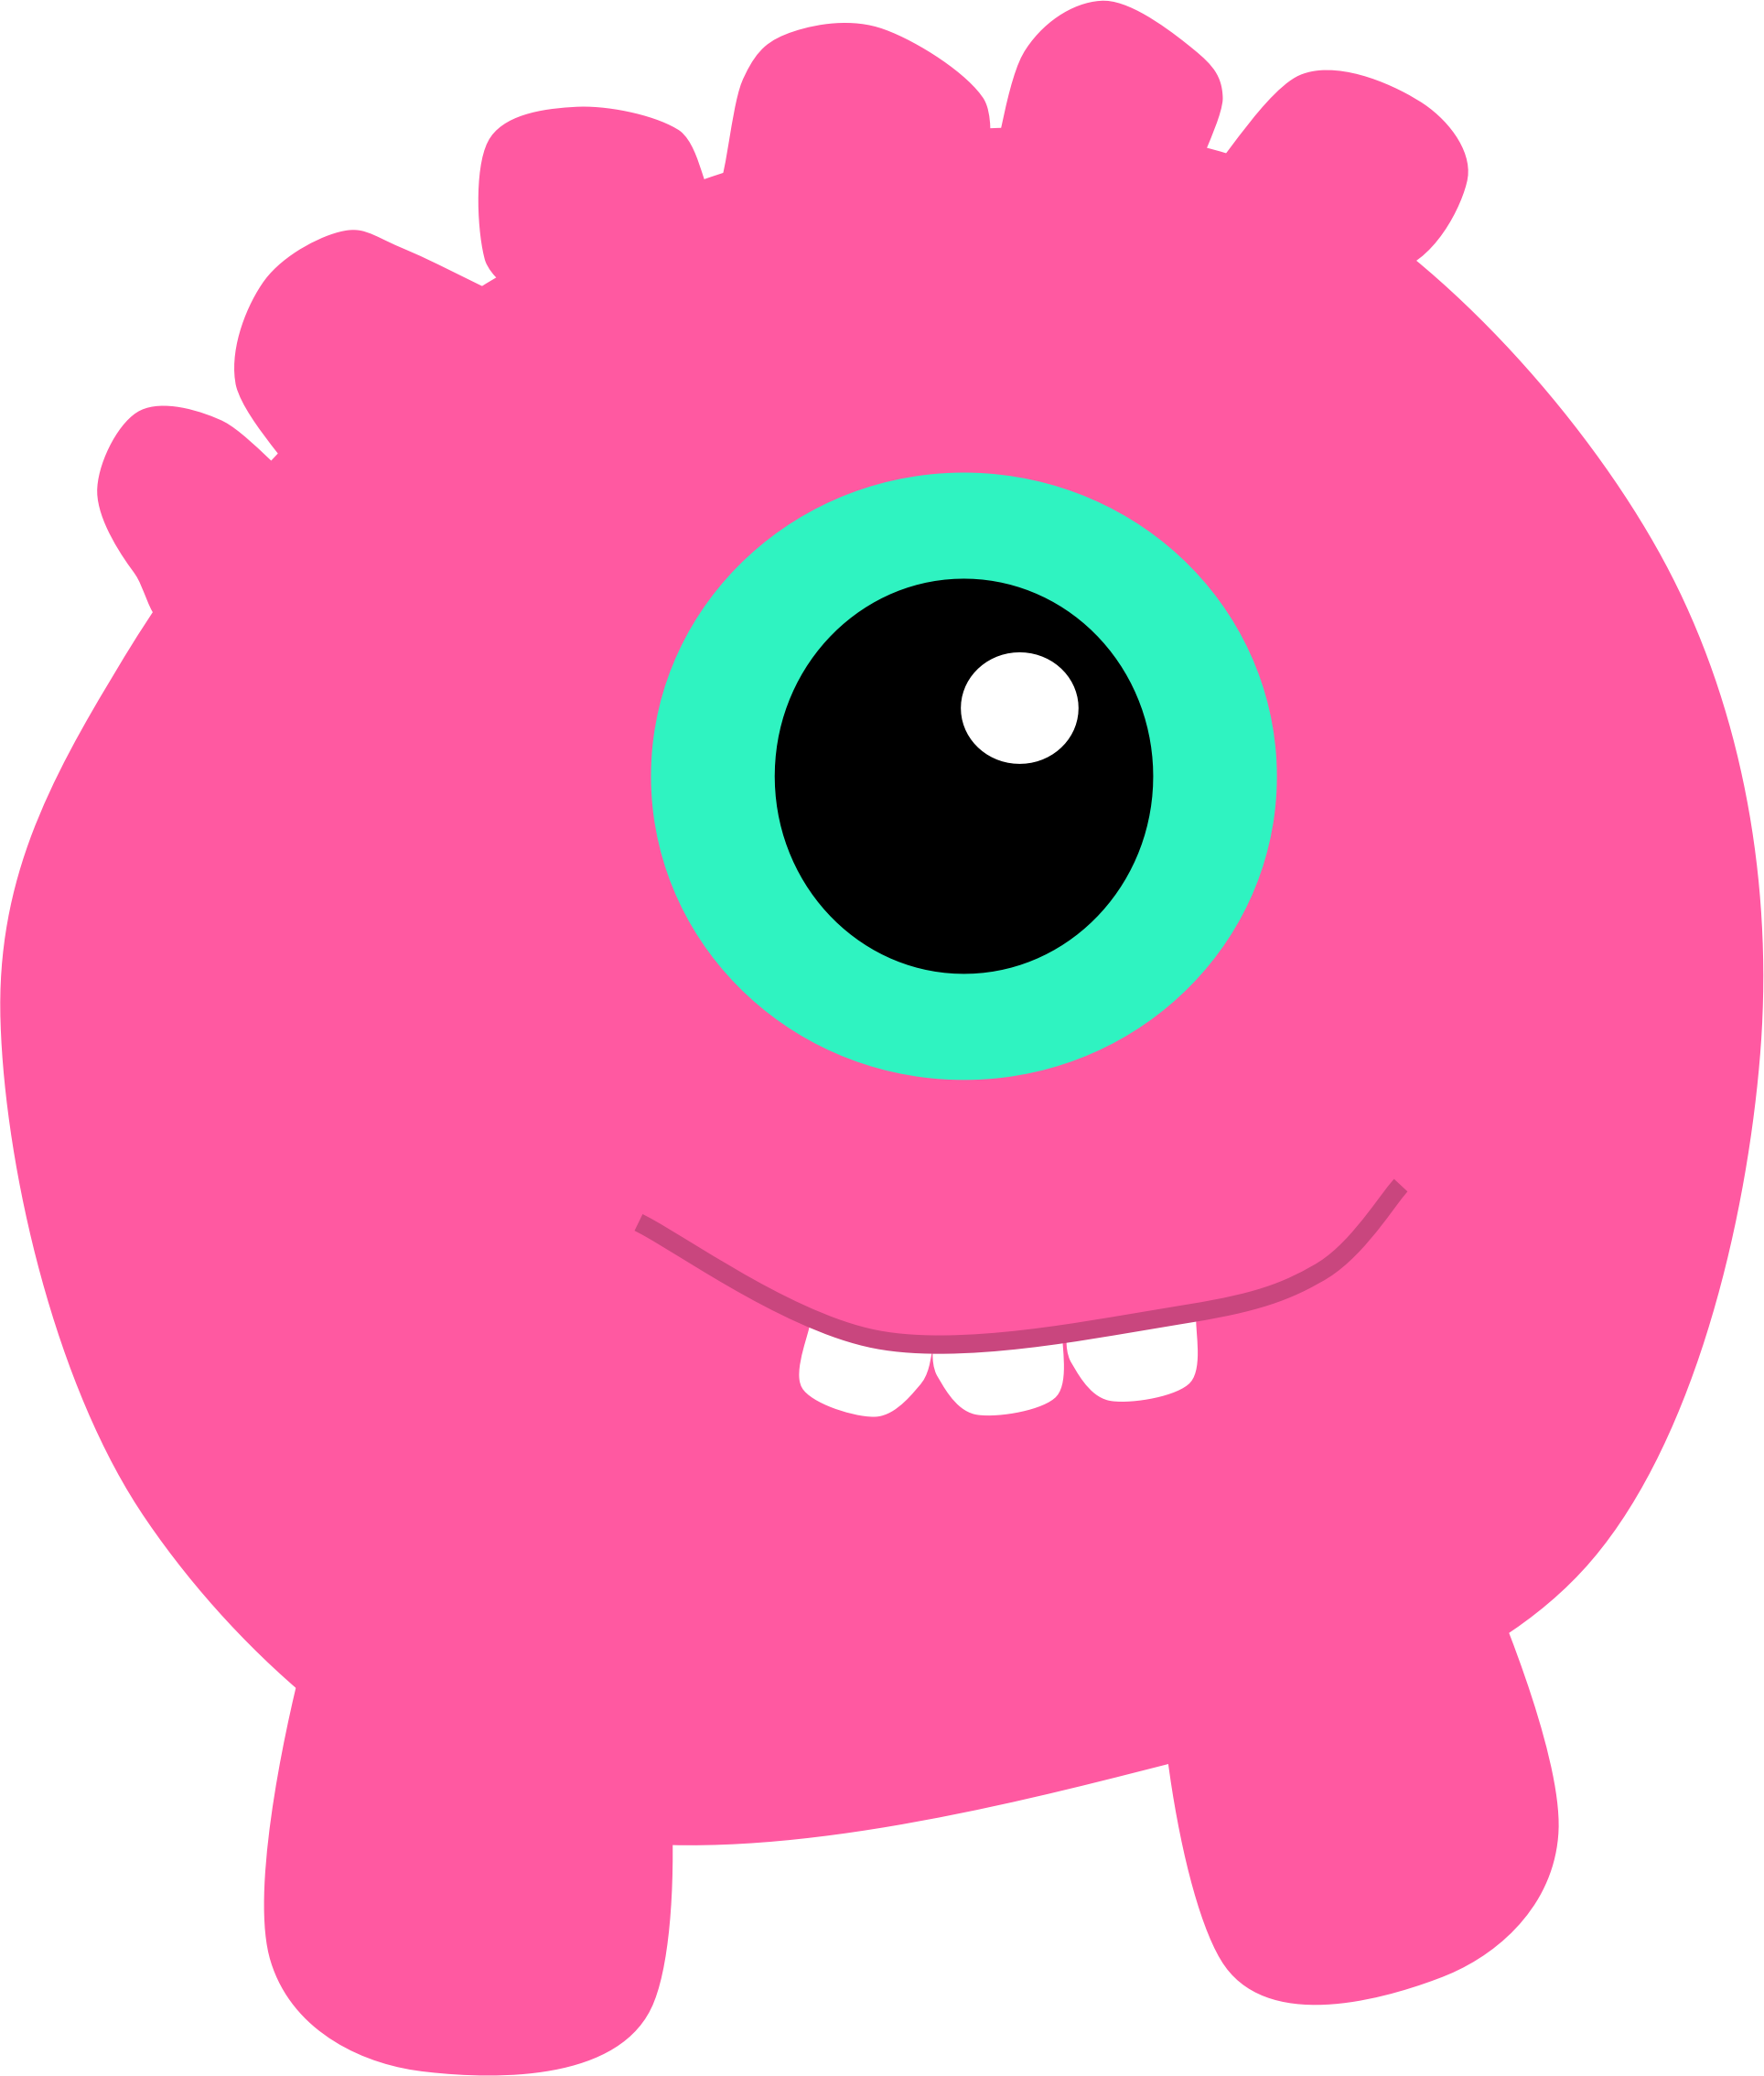 Cartoon monster png. Pink icons free and